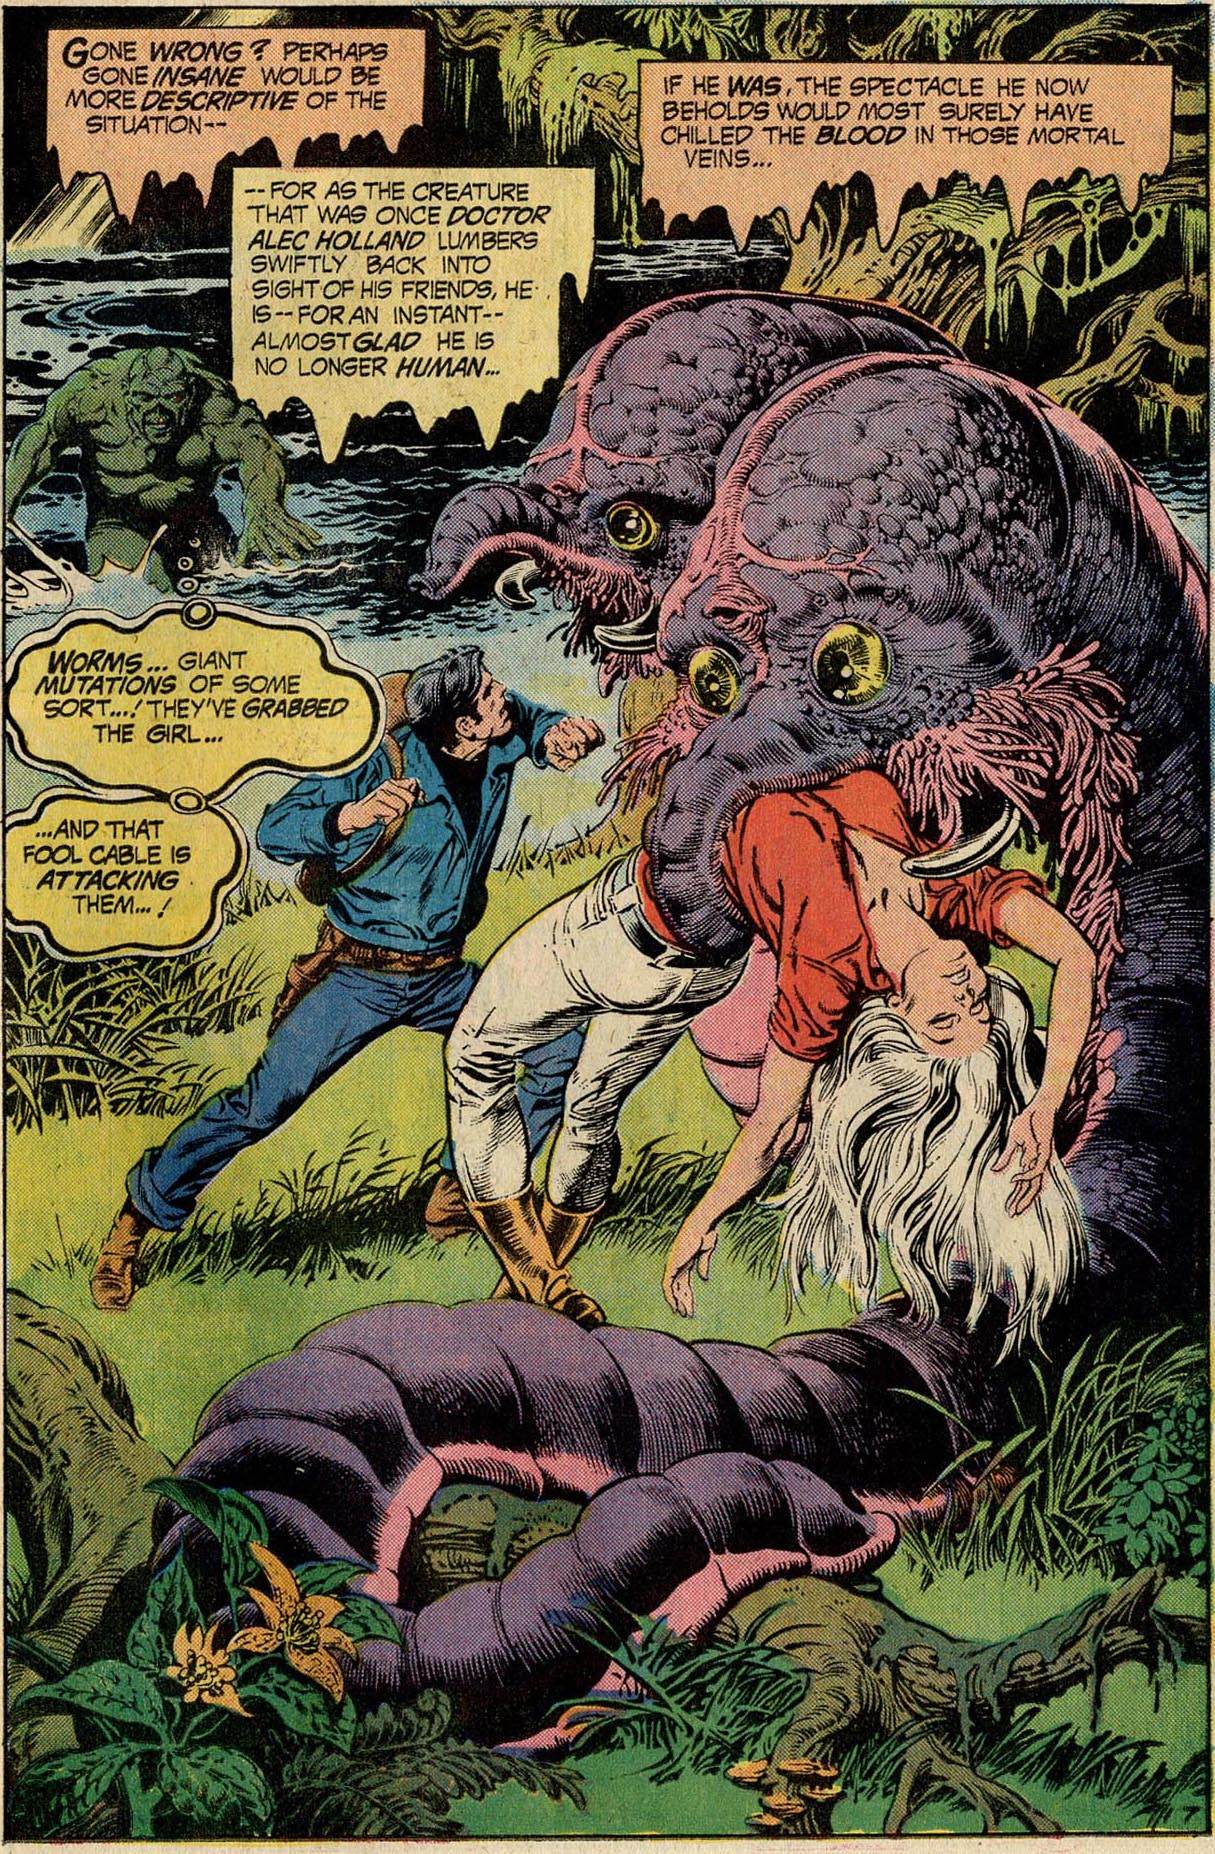 Swamp Thing #11 The Conqueror Worms, by Len Wein and Nestor Redondo